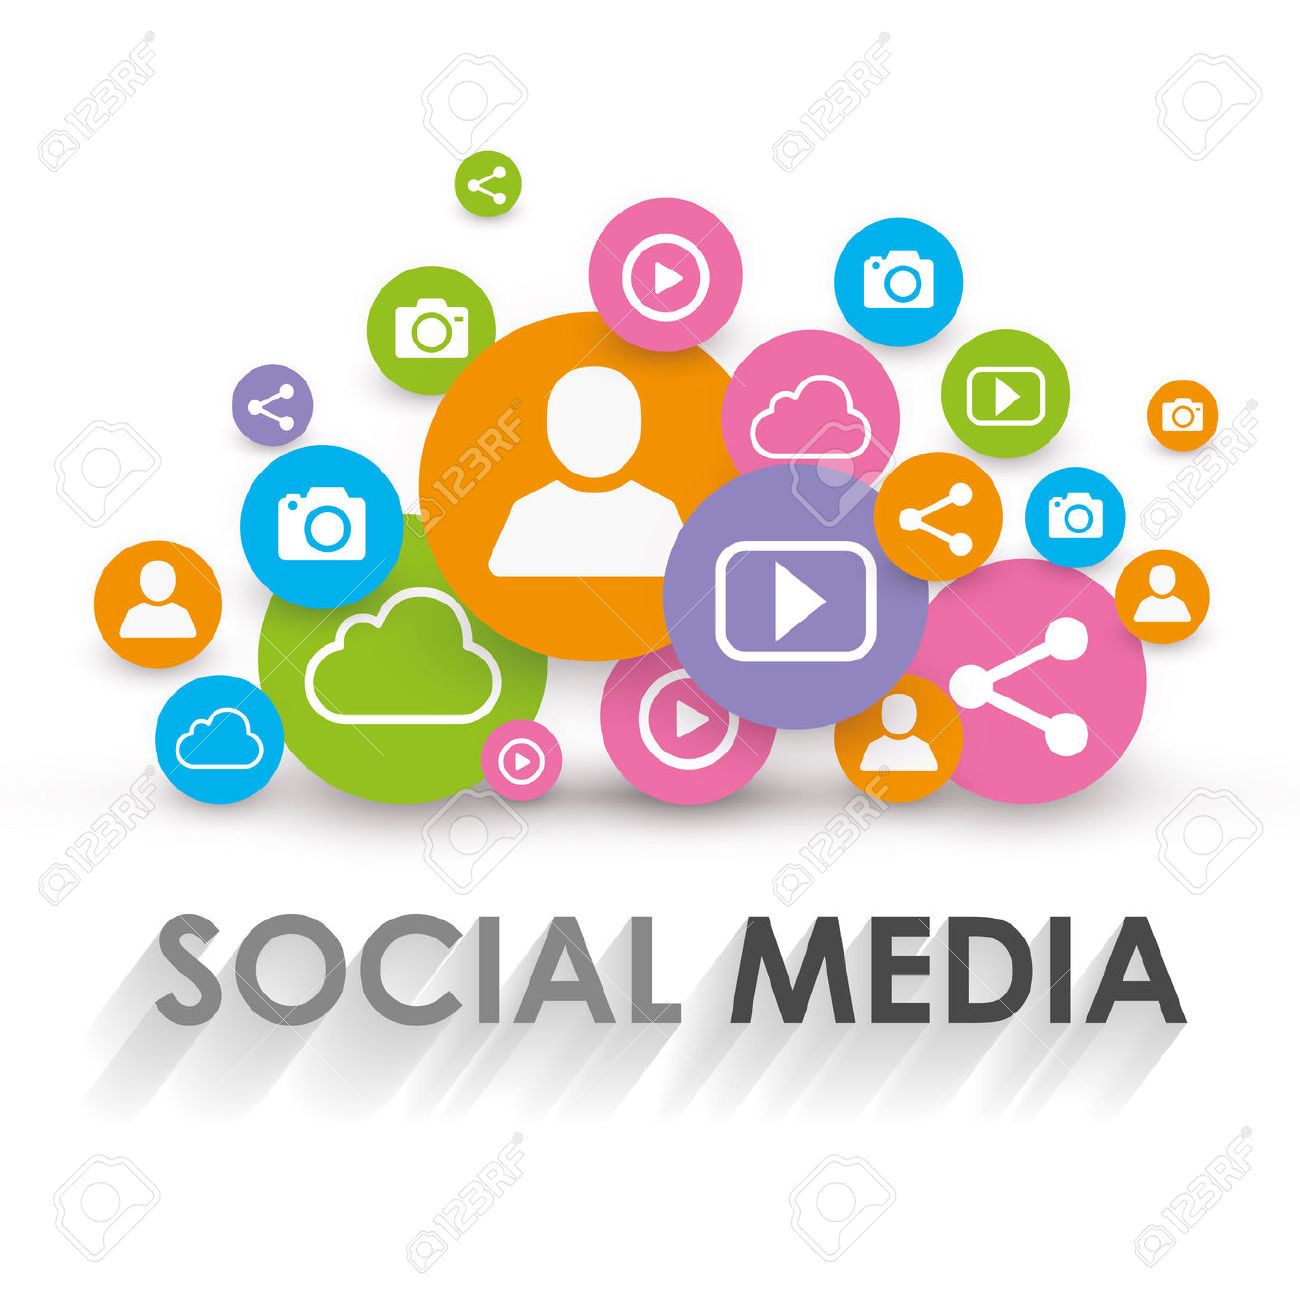 Social media marketing clipart png freeuse stock 21,644 Marketing Manager Stock Vector Illustration And Royalty ... png freeuse stock